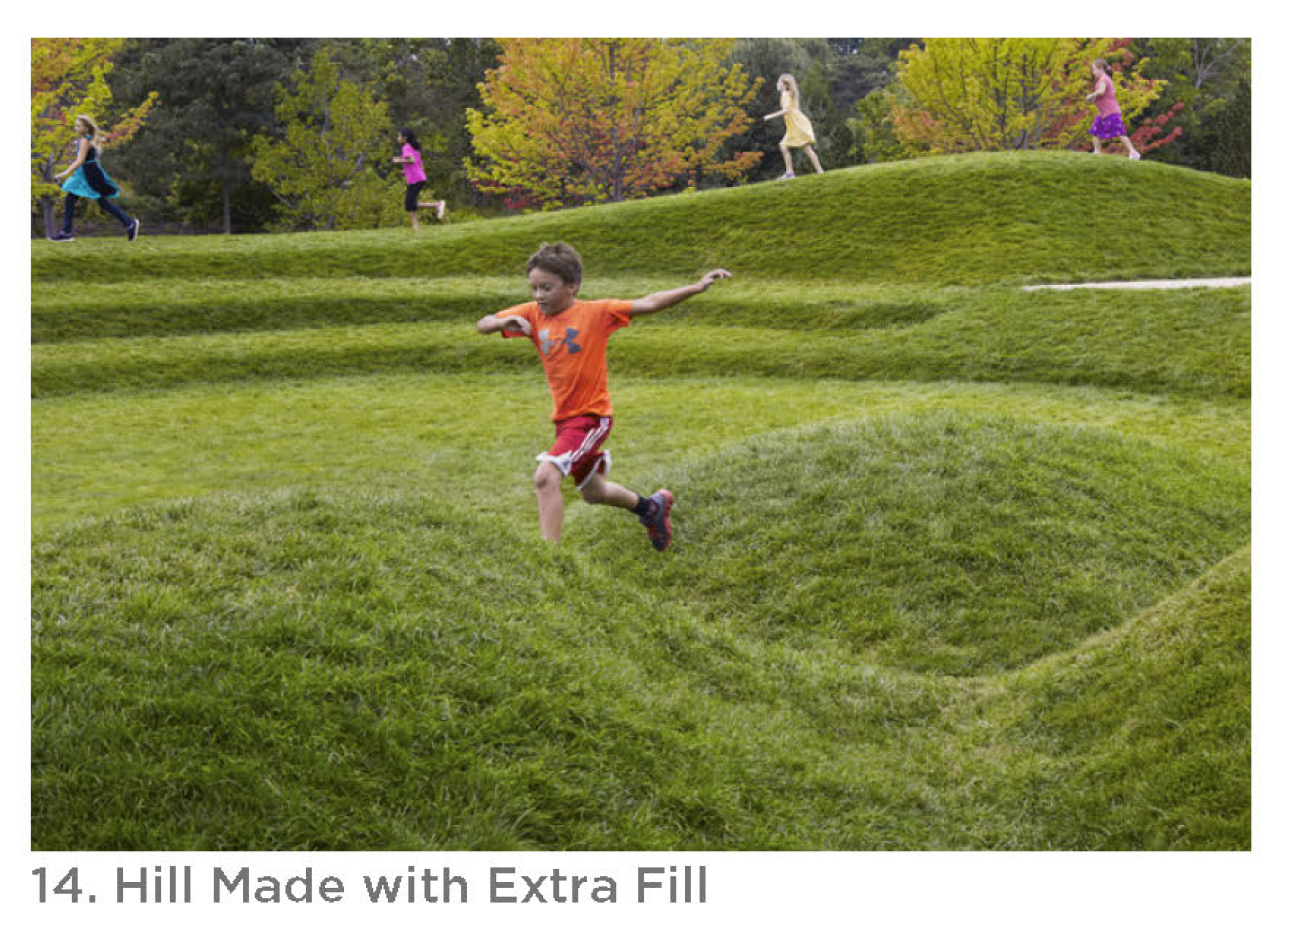 Photo of the hill made with extra fill.